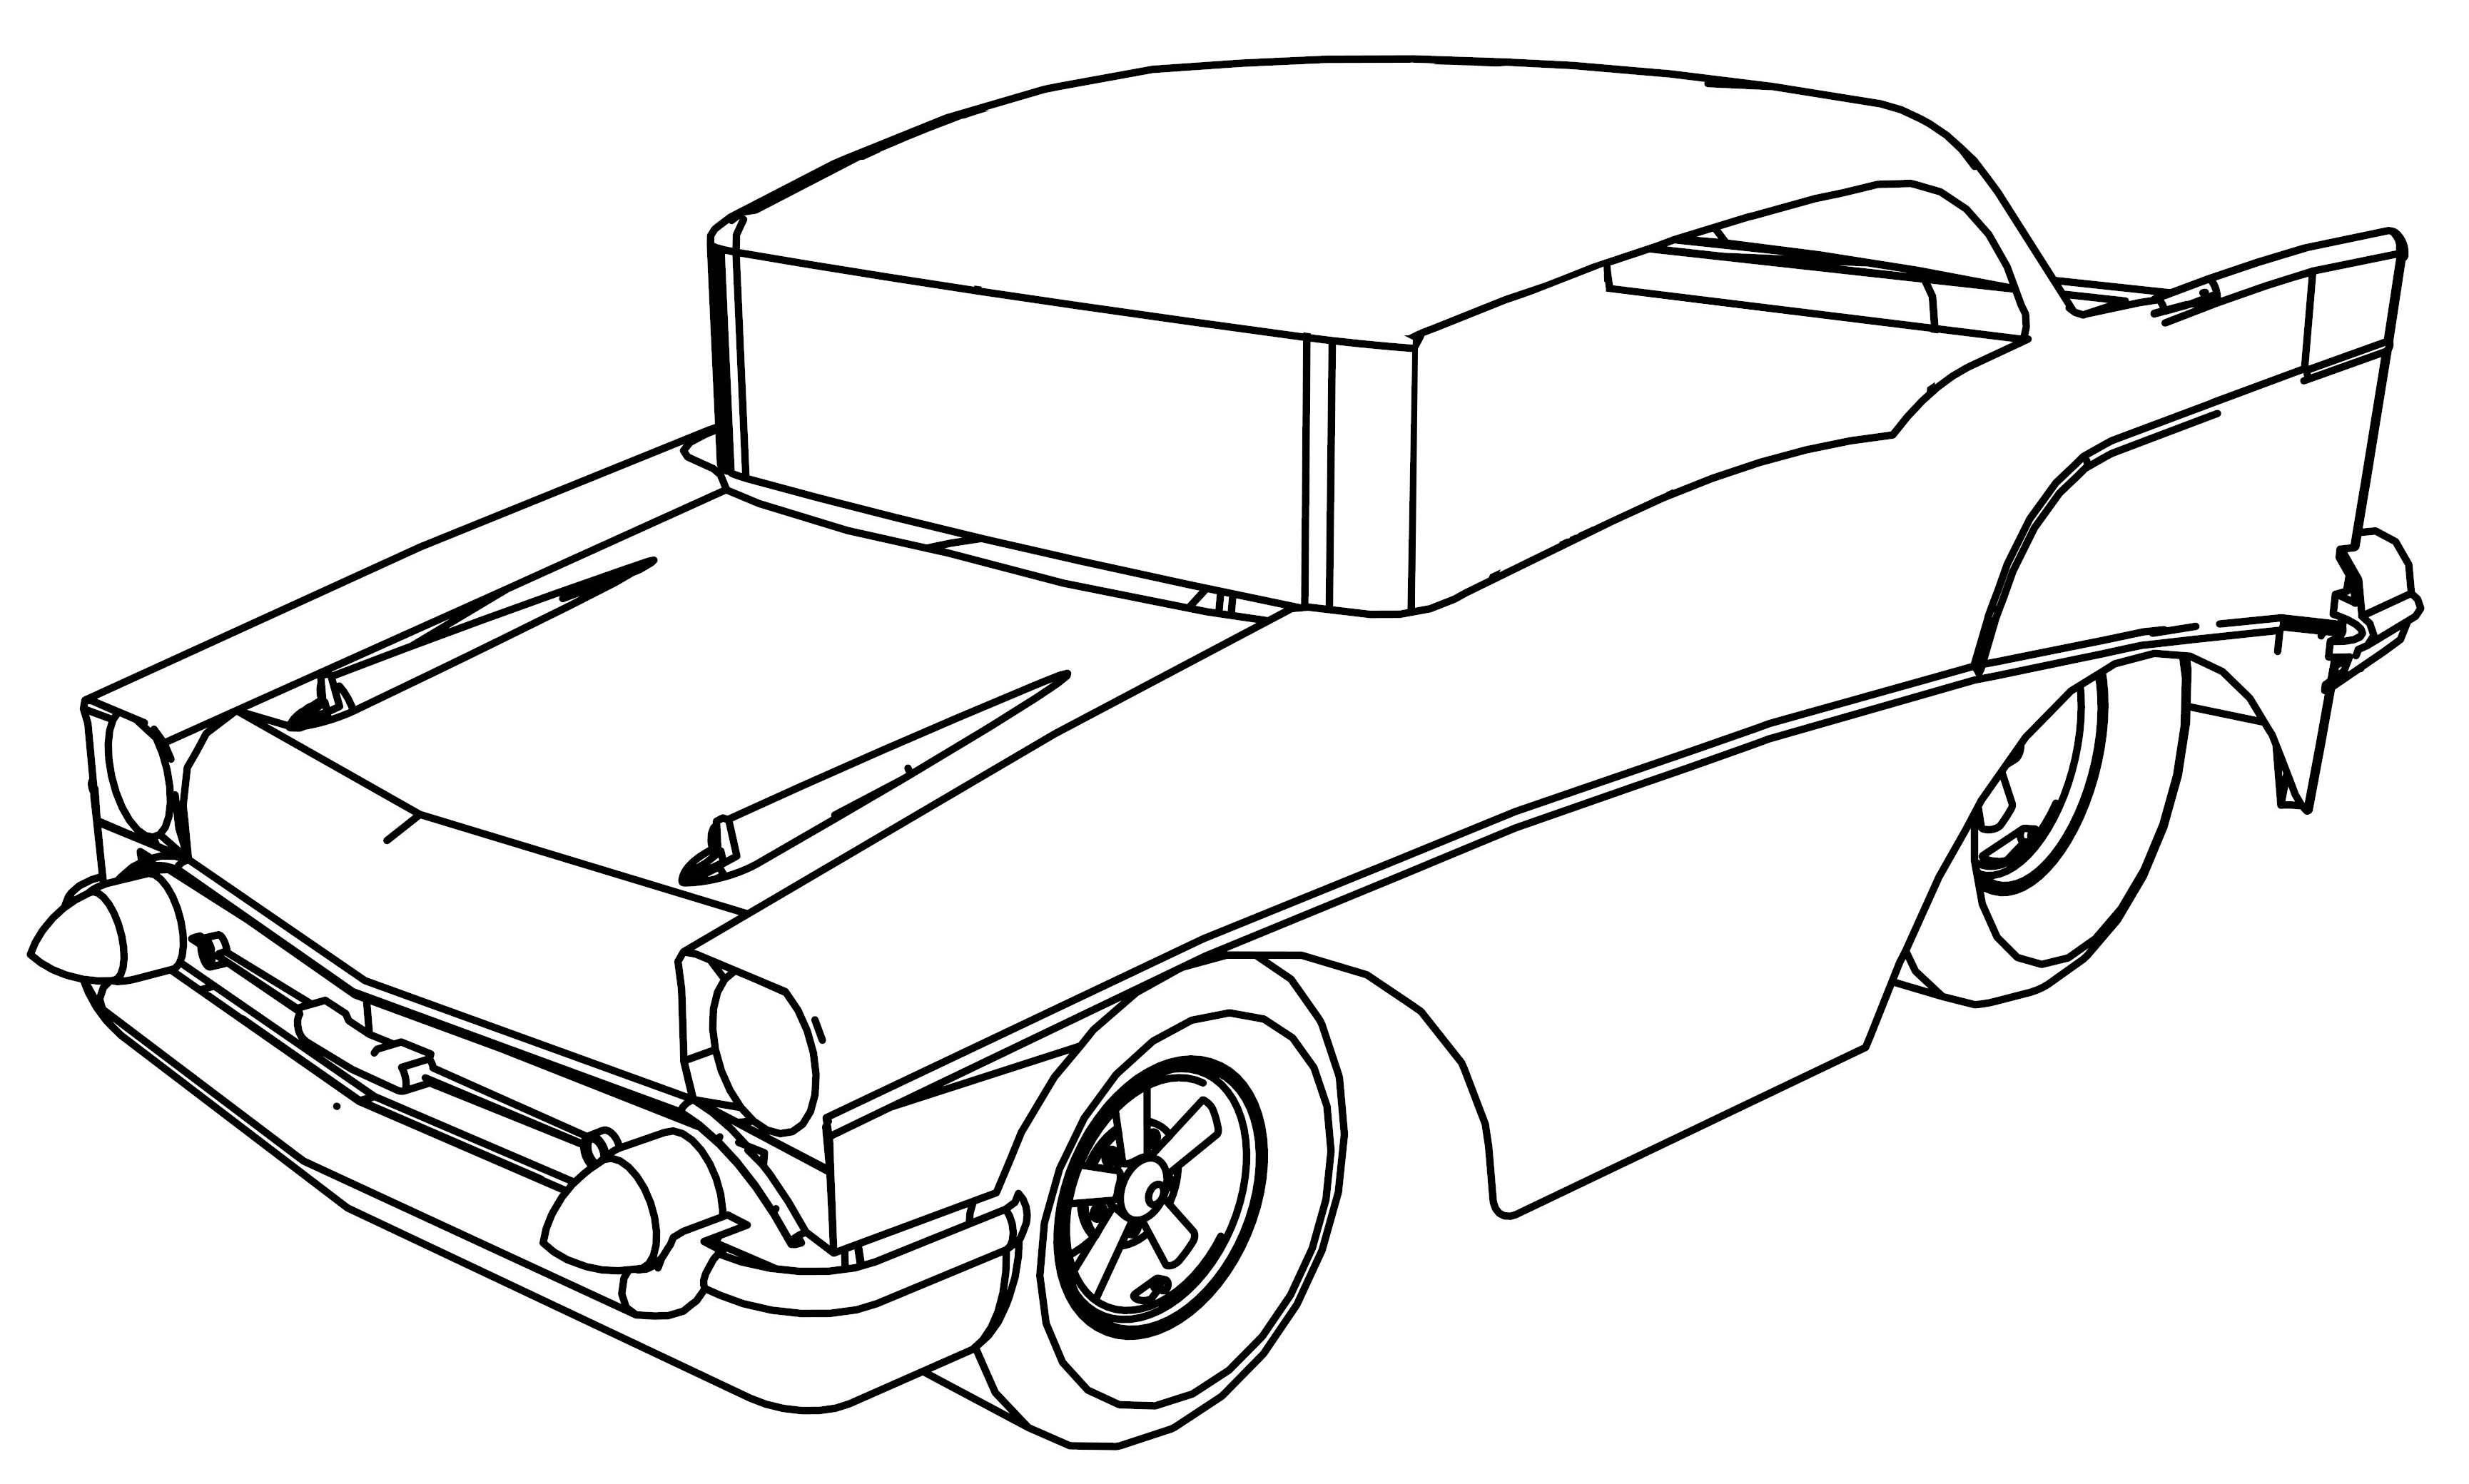 Coloring Pages Cars Cartoon : Woody woodpecker in a car coloring page pages